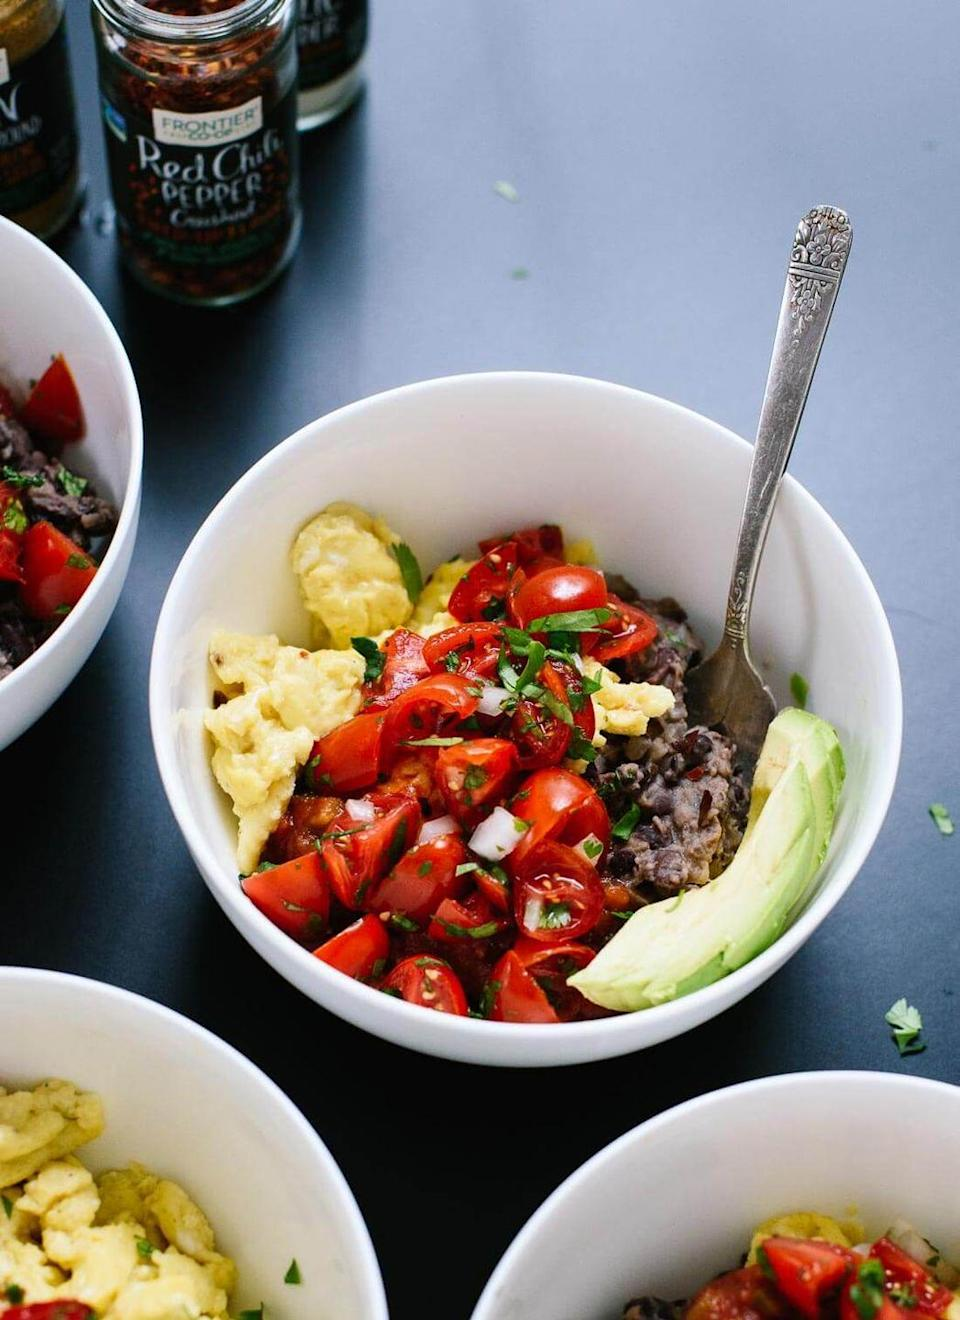 """<p>This is certainly a cowboy-approved breakfast bowl—and it's healthy, too! The hearty black beans and eggs add a ton of protein, while the pico de gallo brings lots of fresh flavor. </p><p><strong>Get the recipe at <a href=""""https://cookieandkate.com/tex-mex-breakfast-bowl-recipe/"""" rel=""""nofollow noopener"""" target=""""_blank"""" data-ylk=""""slk:Cookie + Kate"""" class=""""link rapid-noclick-resp"""">Cookie + Kate</a>.</strong></p><p><strong><a class=""""link rapid-noclick-resp"""" href=""""https://go.redirectingat.com?id=74968X1596630&url=https%3A%2F%2Fwww.walmart.com%2Fsearch%2F%3Fquery%3Dpioneer%2Bwoman%2Bsaucepan&sref=https%3A%2F%2Fwww.thepioneerwoman.com%2Ffood-cooking%2Fmeals-menus%2Fg34922086%2Fhealthy-breakfast-ideas%2F"""" rel=""""nofollow noopener"""" target=""""_blank"""" data-ylk=""""slk:SHOP SAUCEPANS"""">SHOP SAUCEPANS</a><br></strong></p>"""